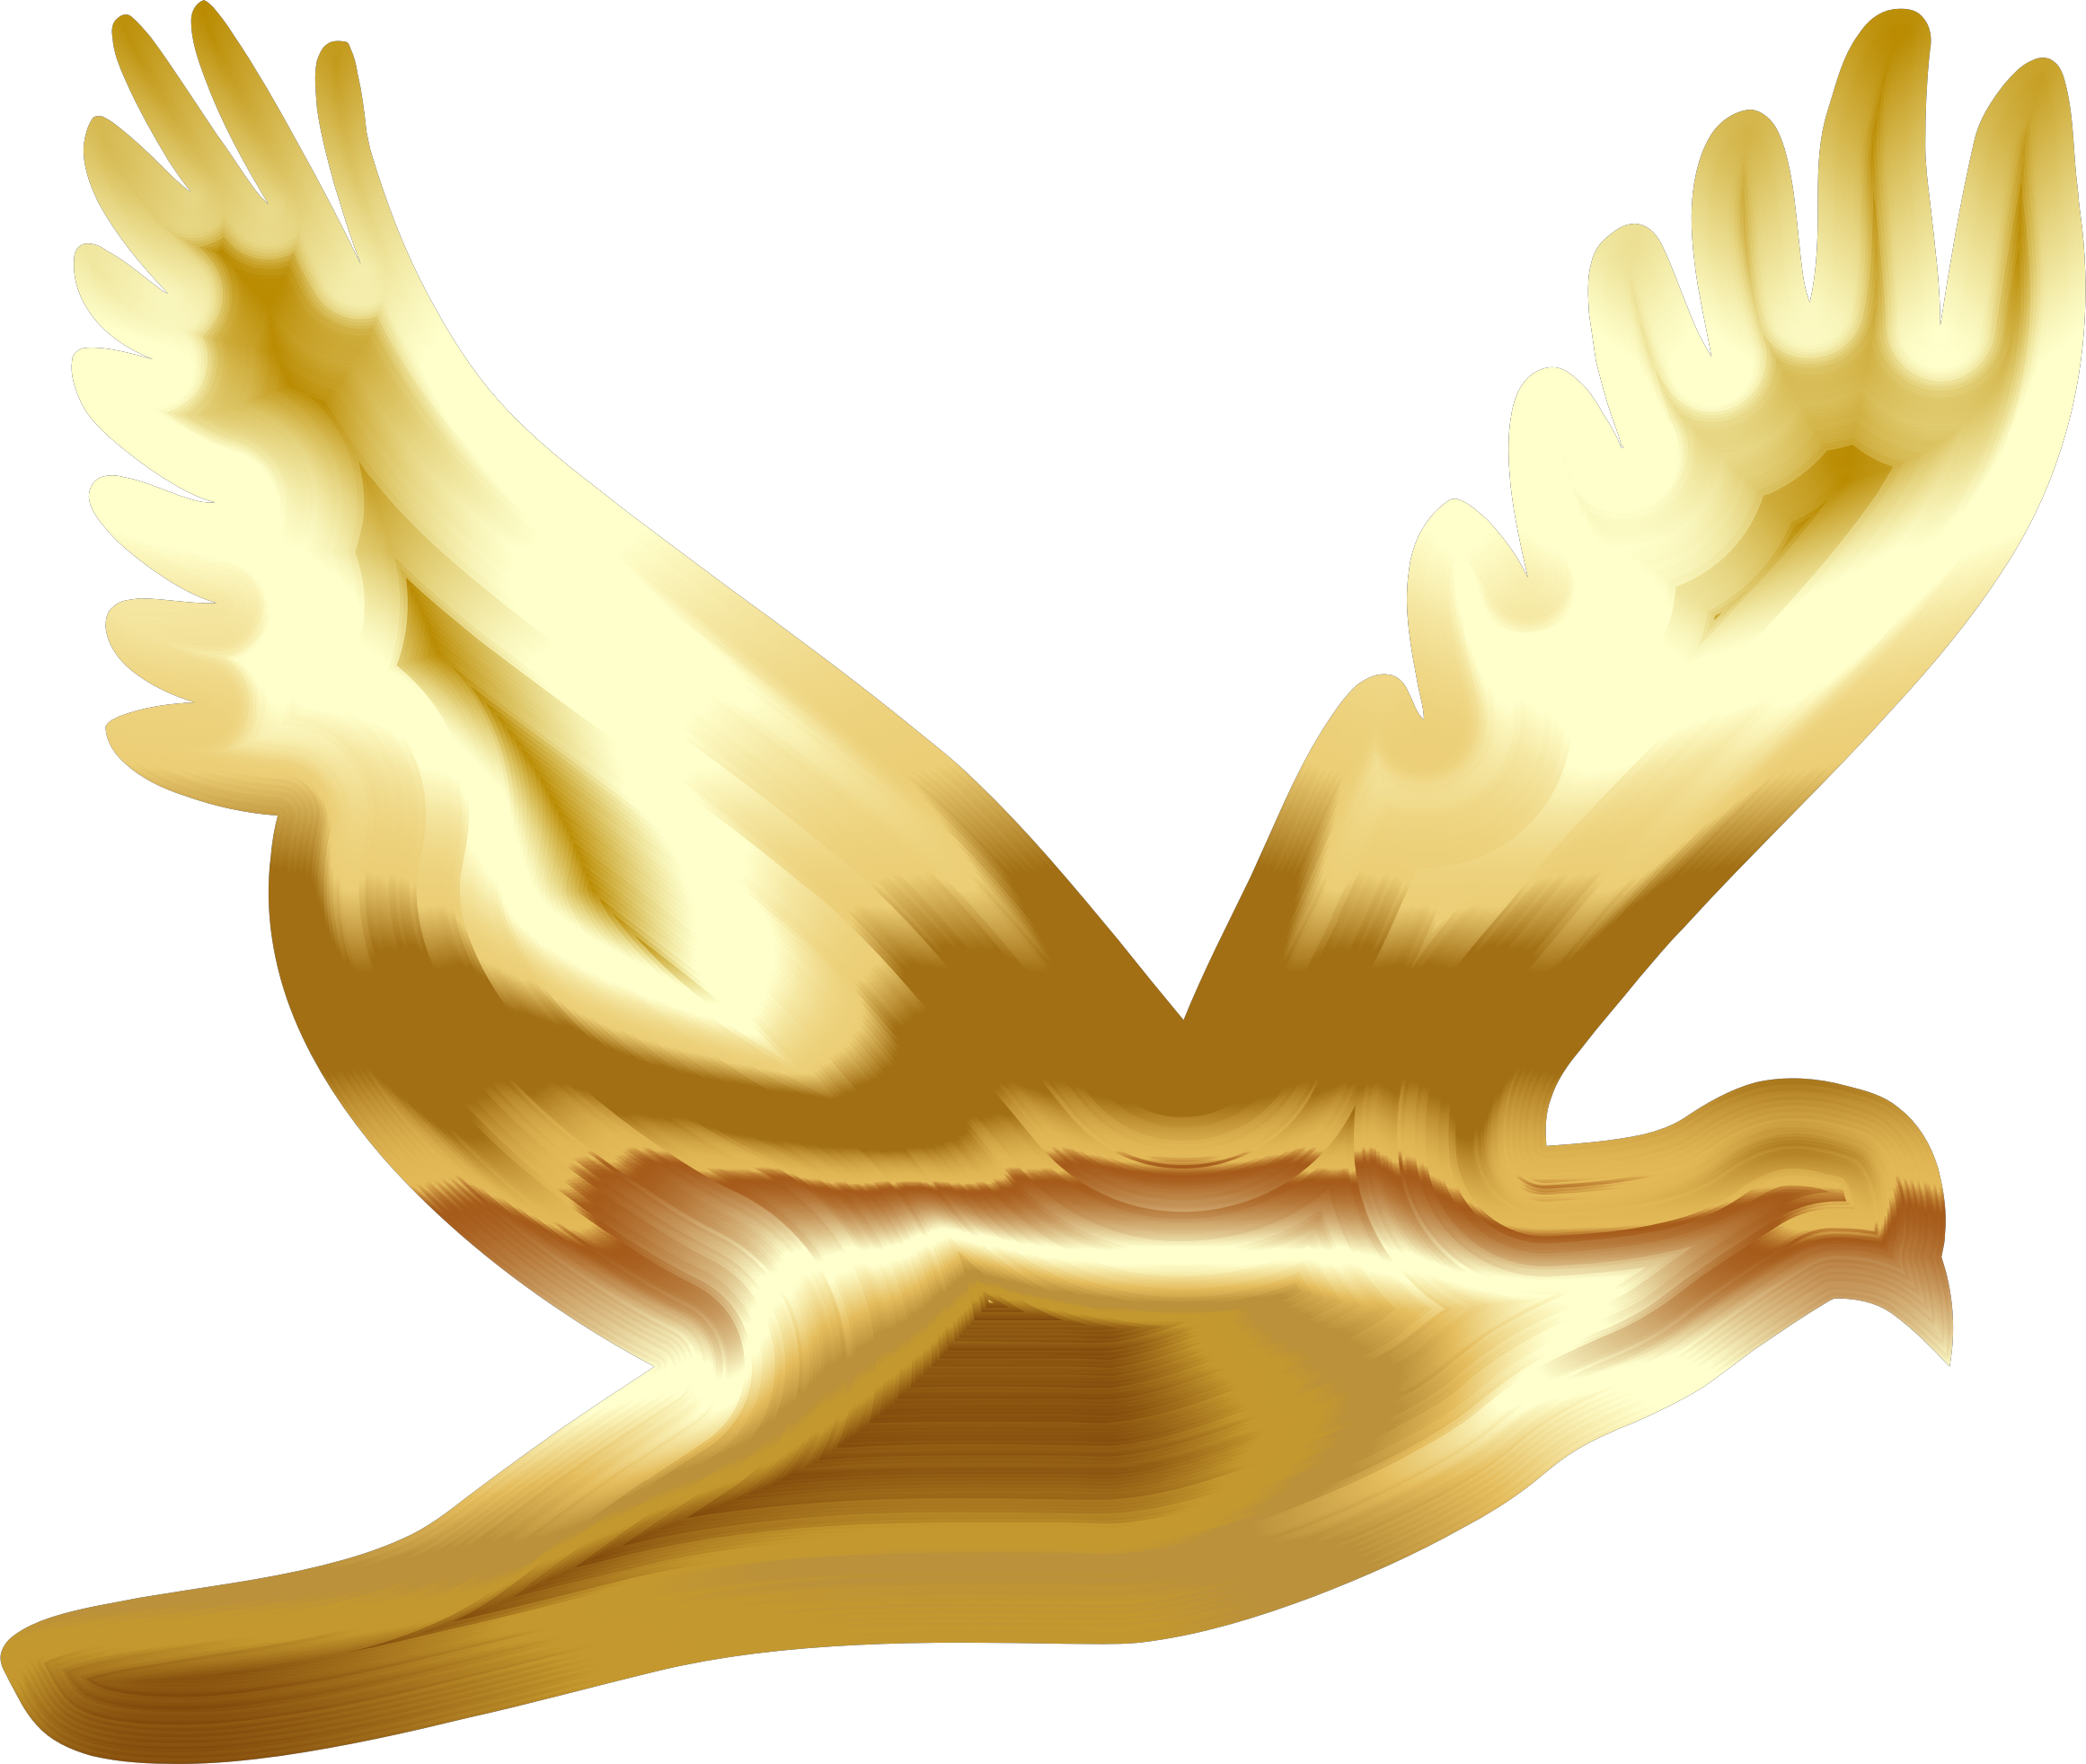 2322x1964 Gold Flying Dove Silhouette No Background Icons Png